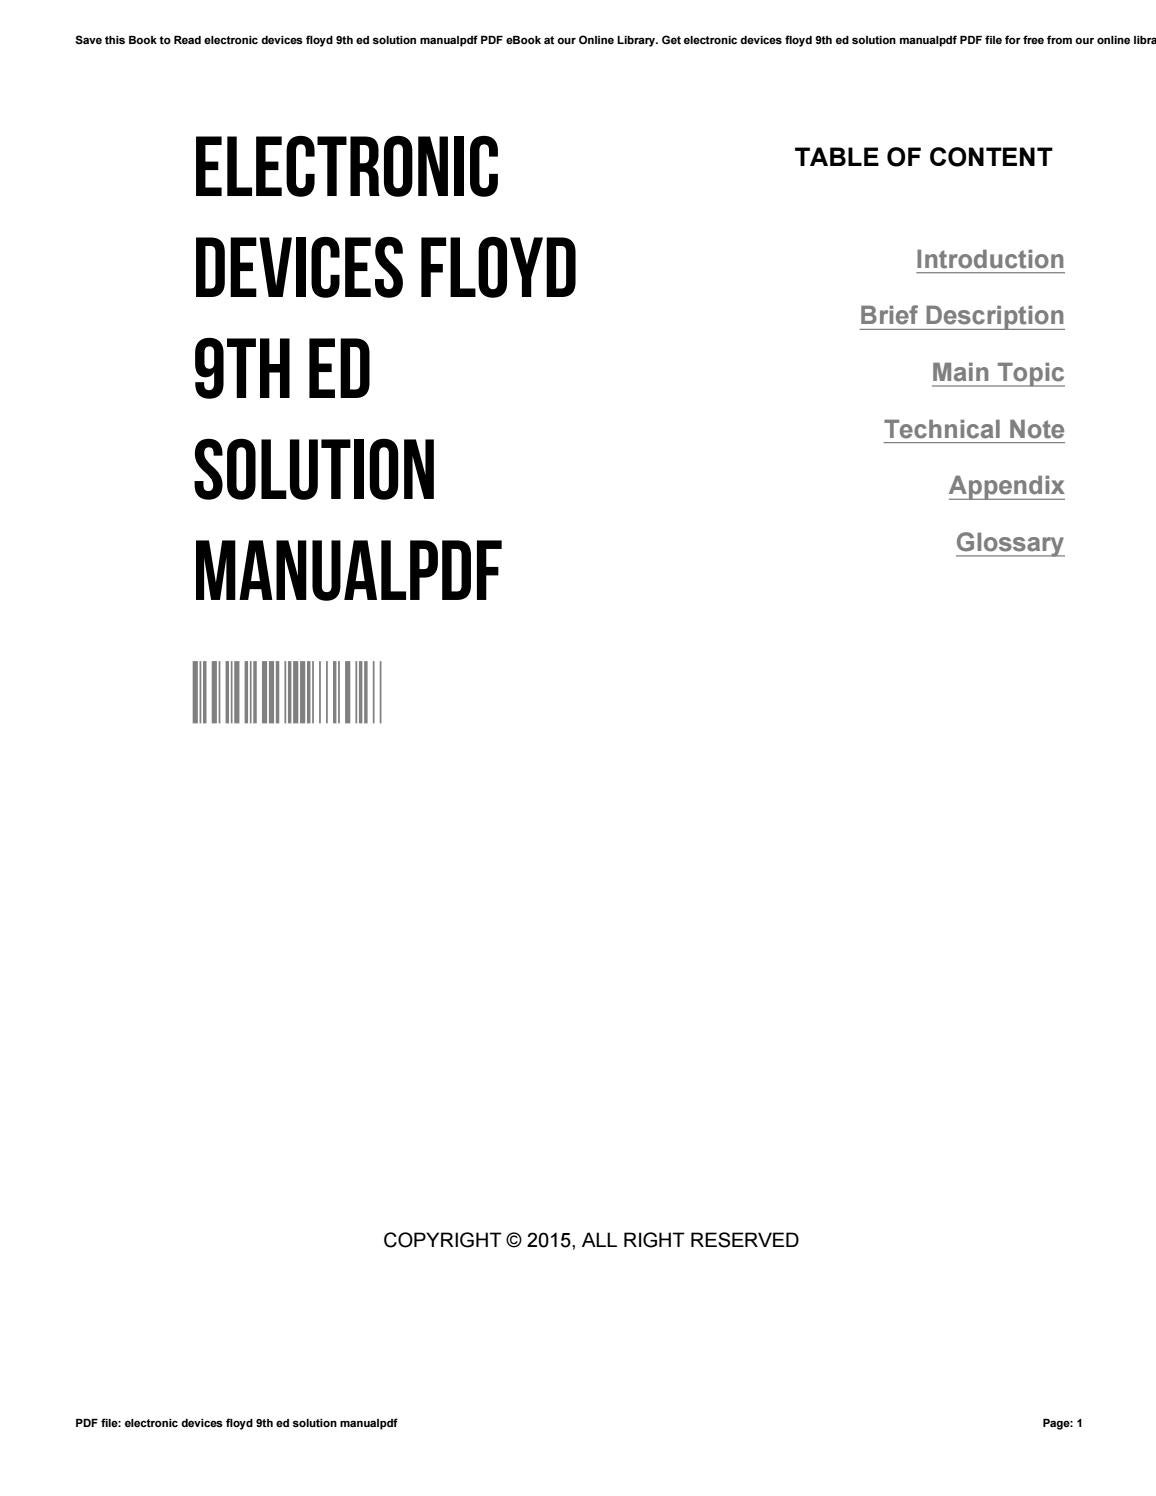 Electronic Devices 9th Edition Floyd Solution Manual